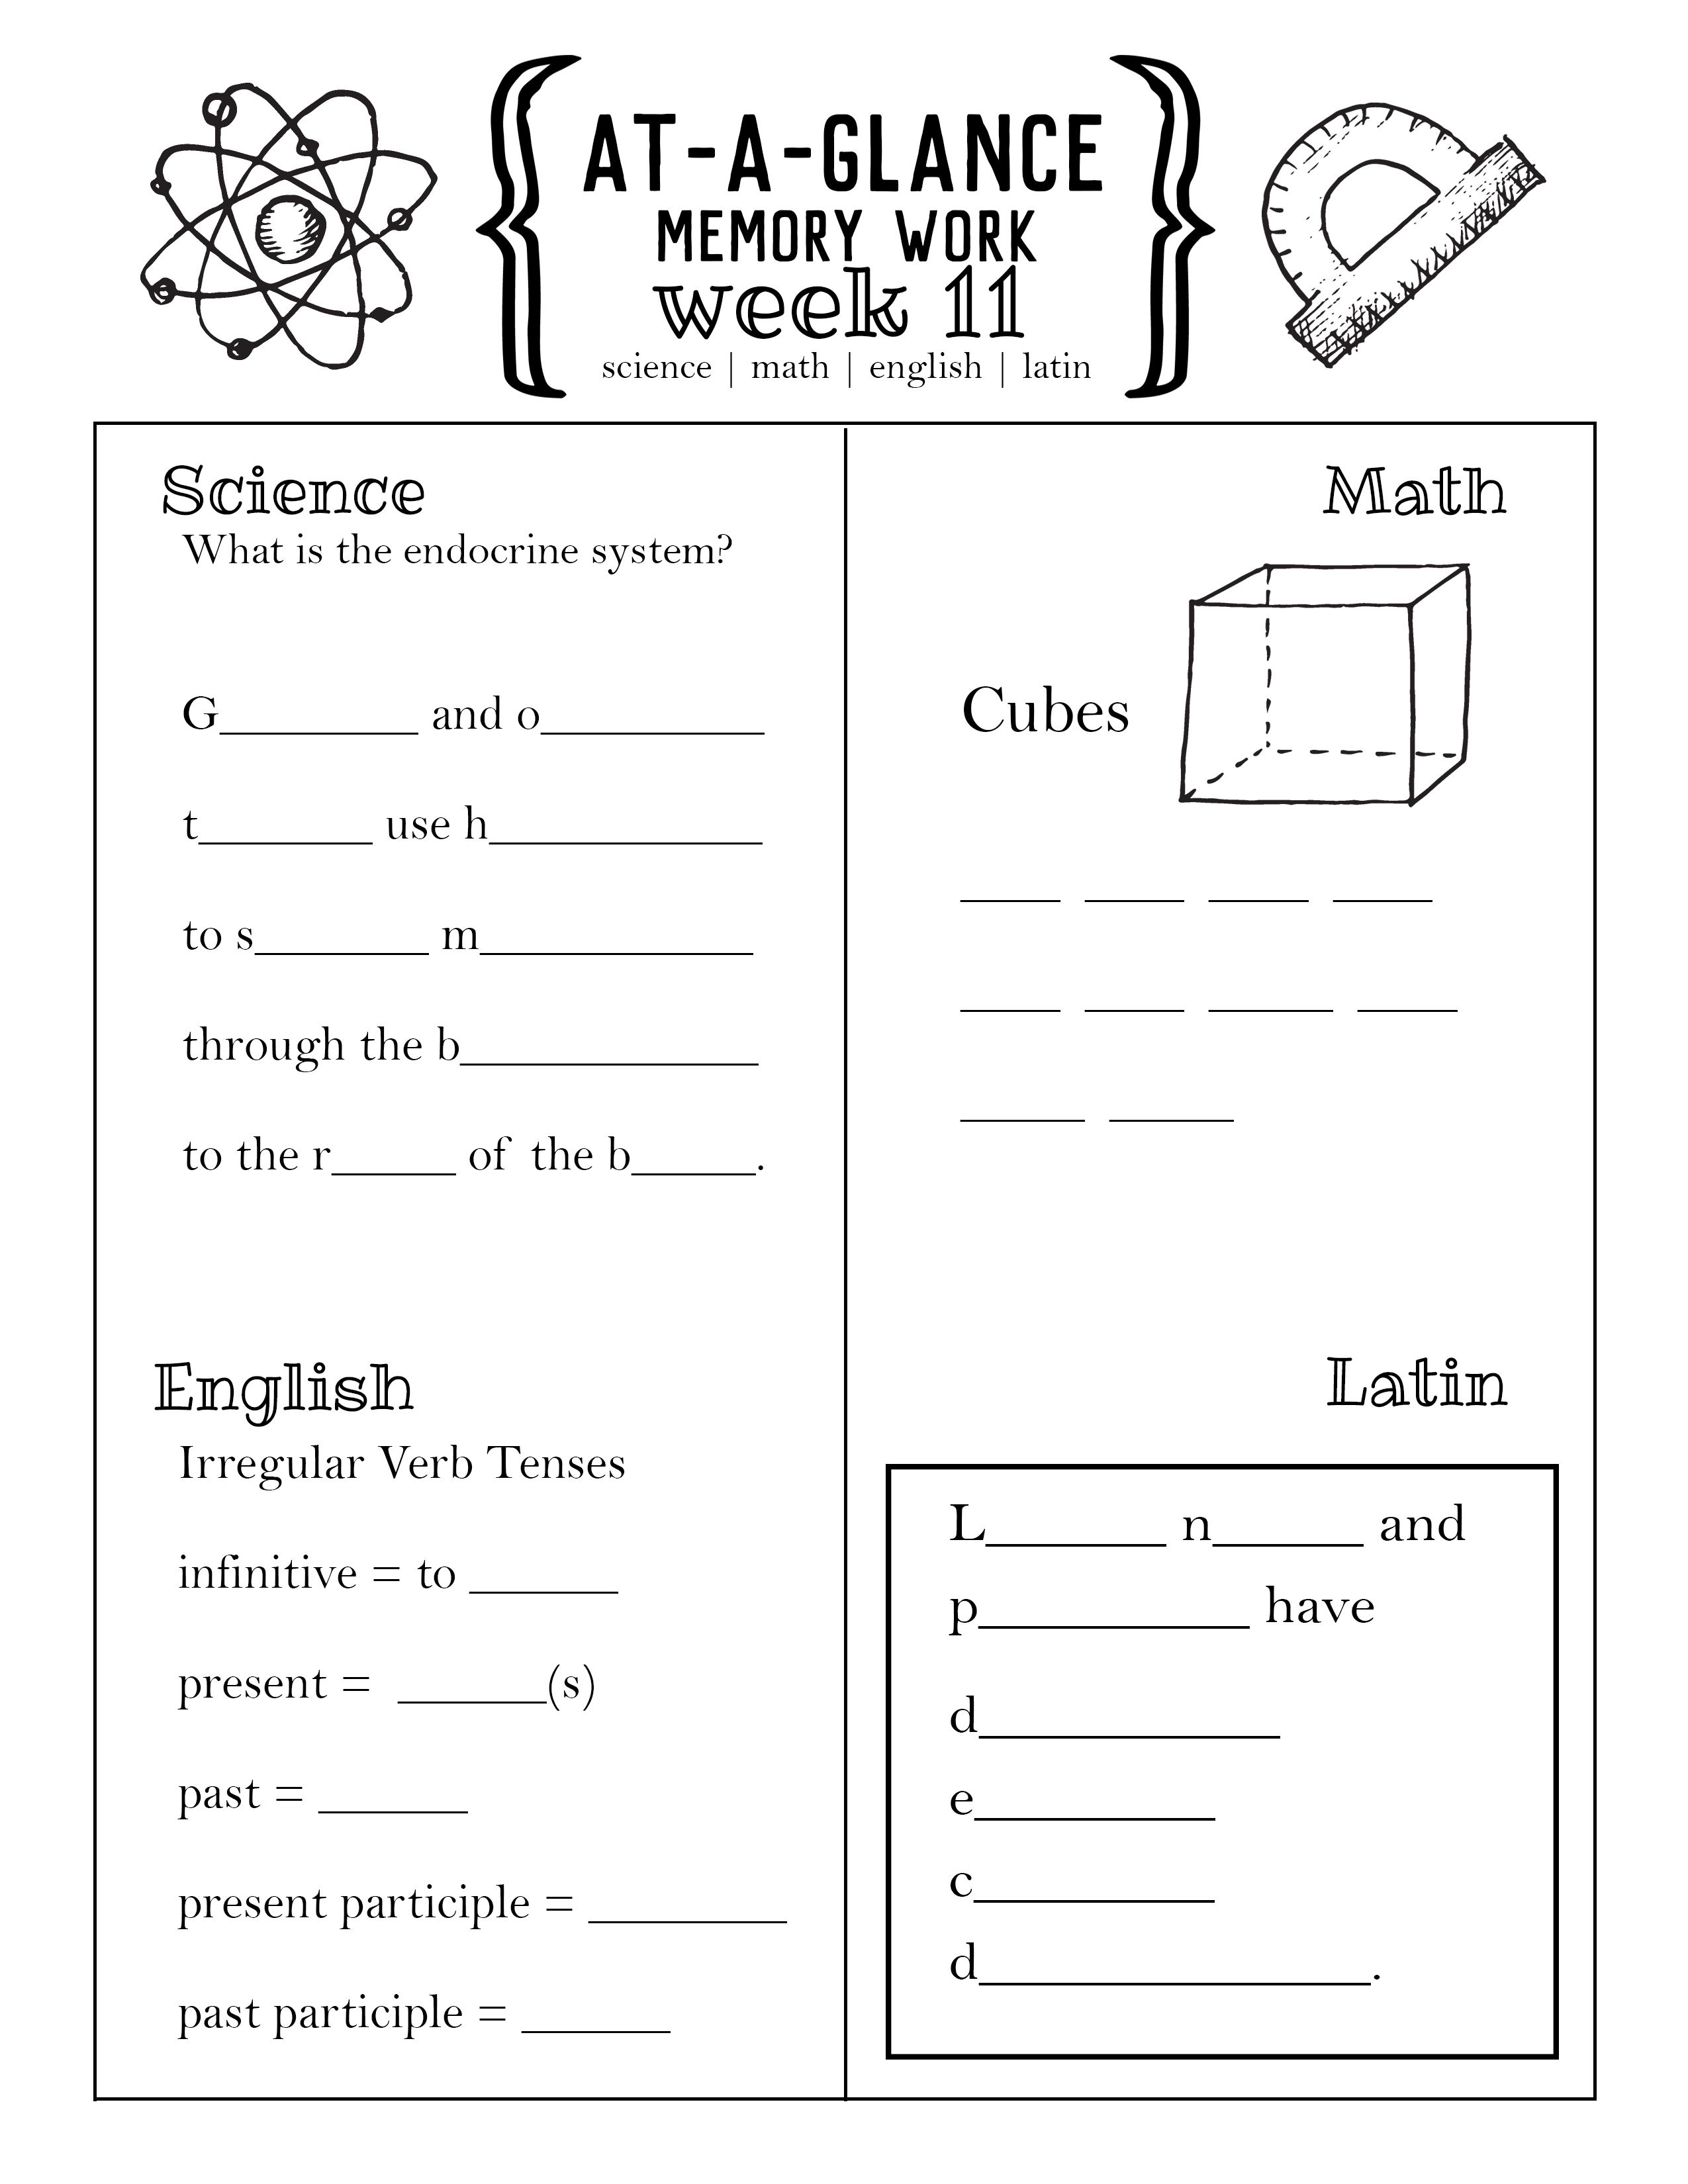 small resolution of Cycle 3 At-A-Glance Memory Worksheets PDF   Kindergarten worksheets